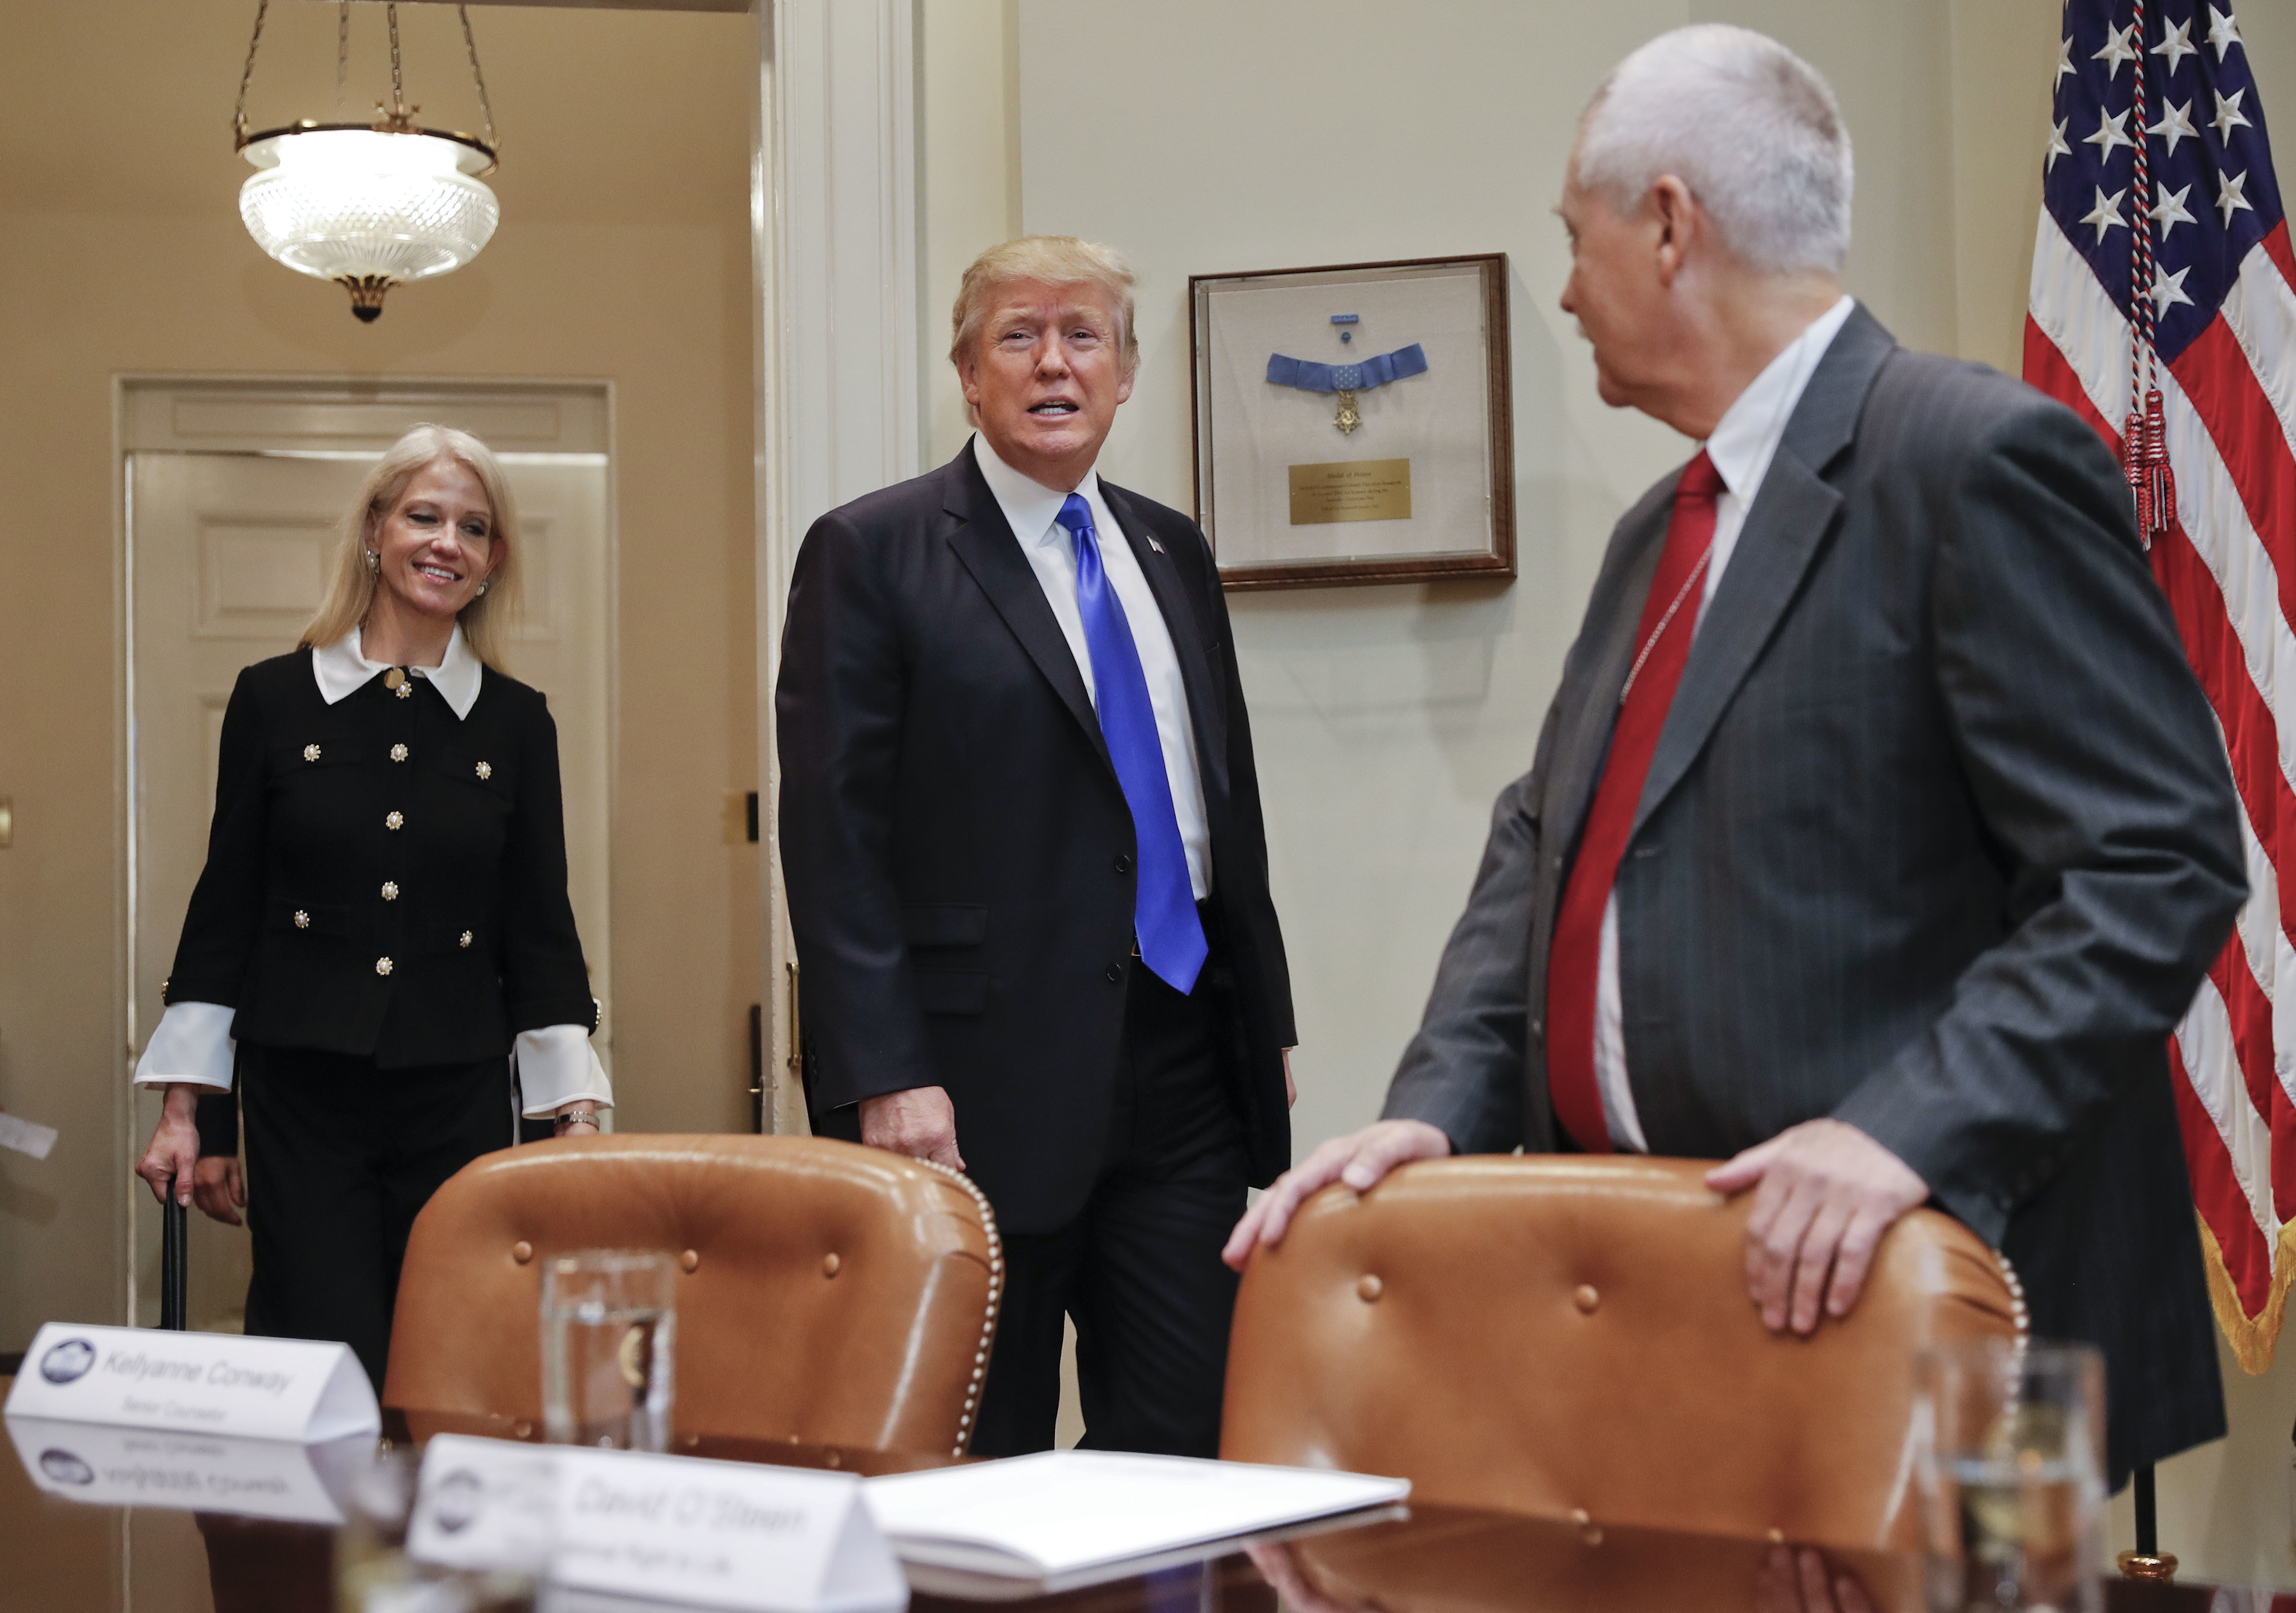 Kellyanne Conway proclaims Mike Pence is pro-woman after